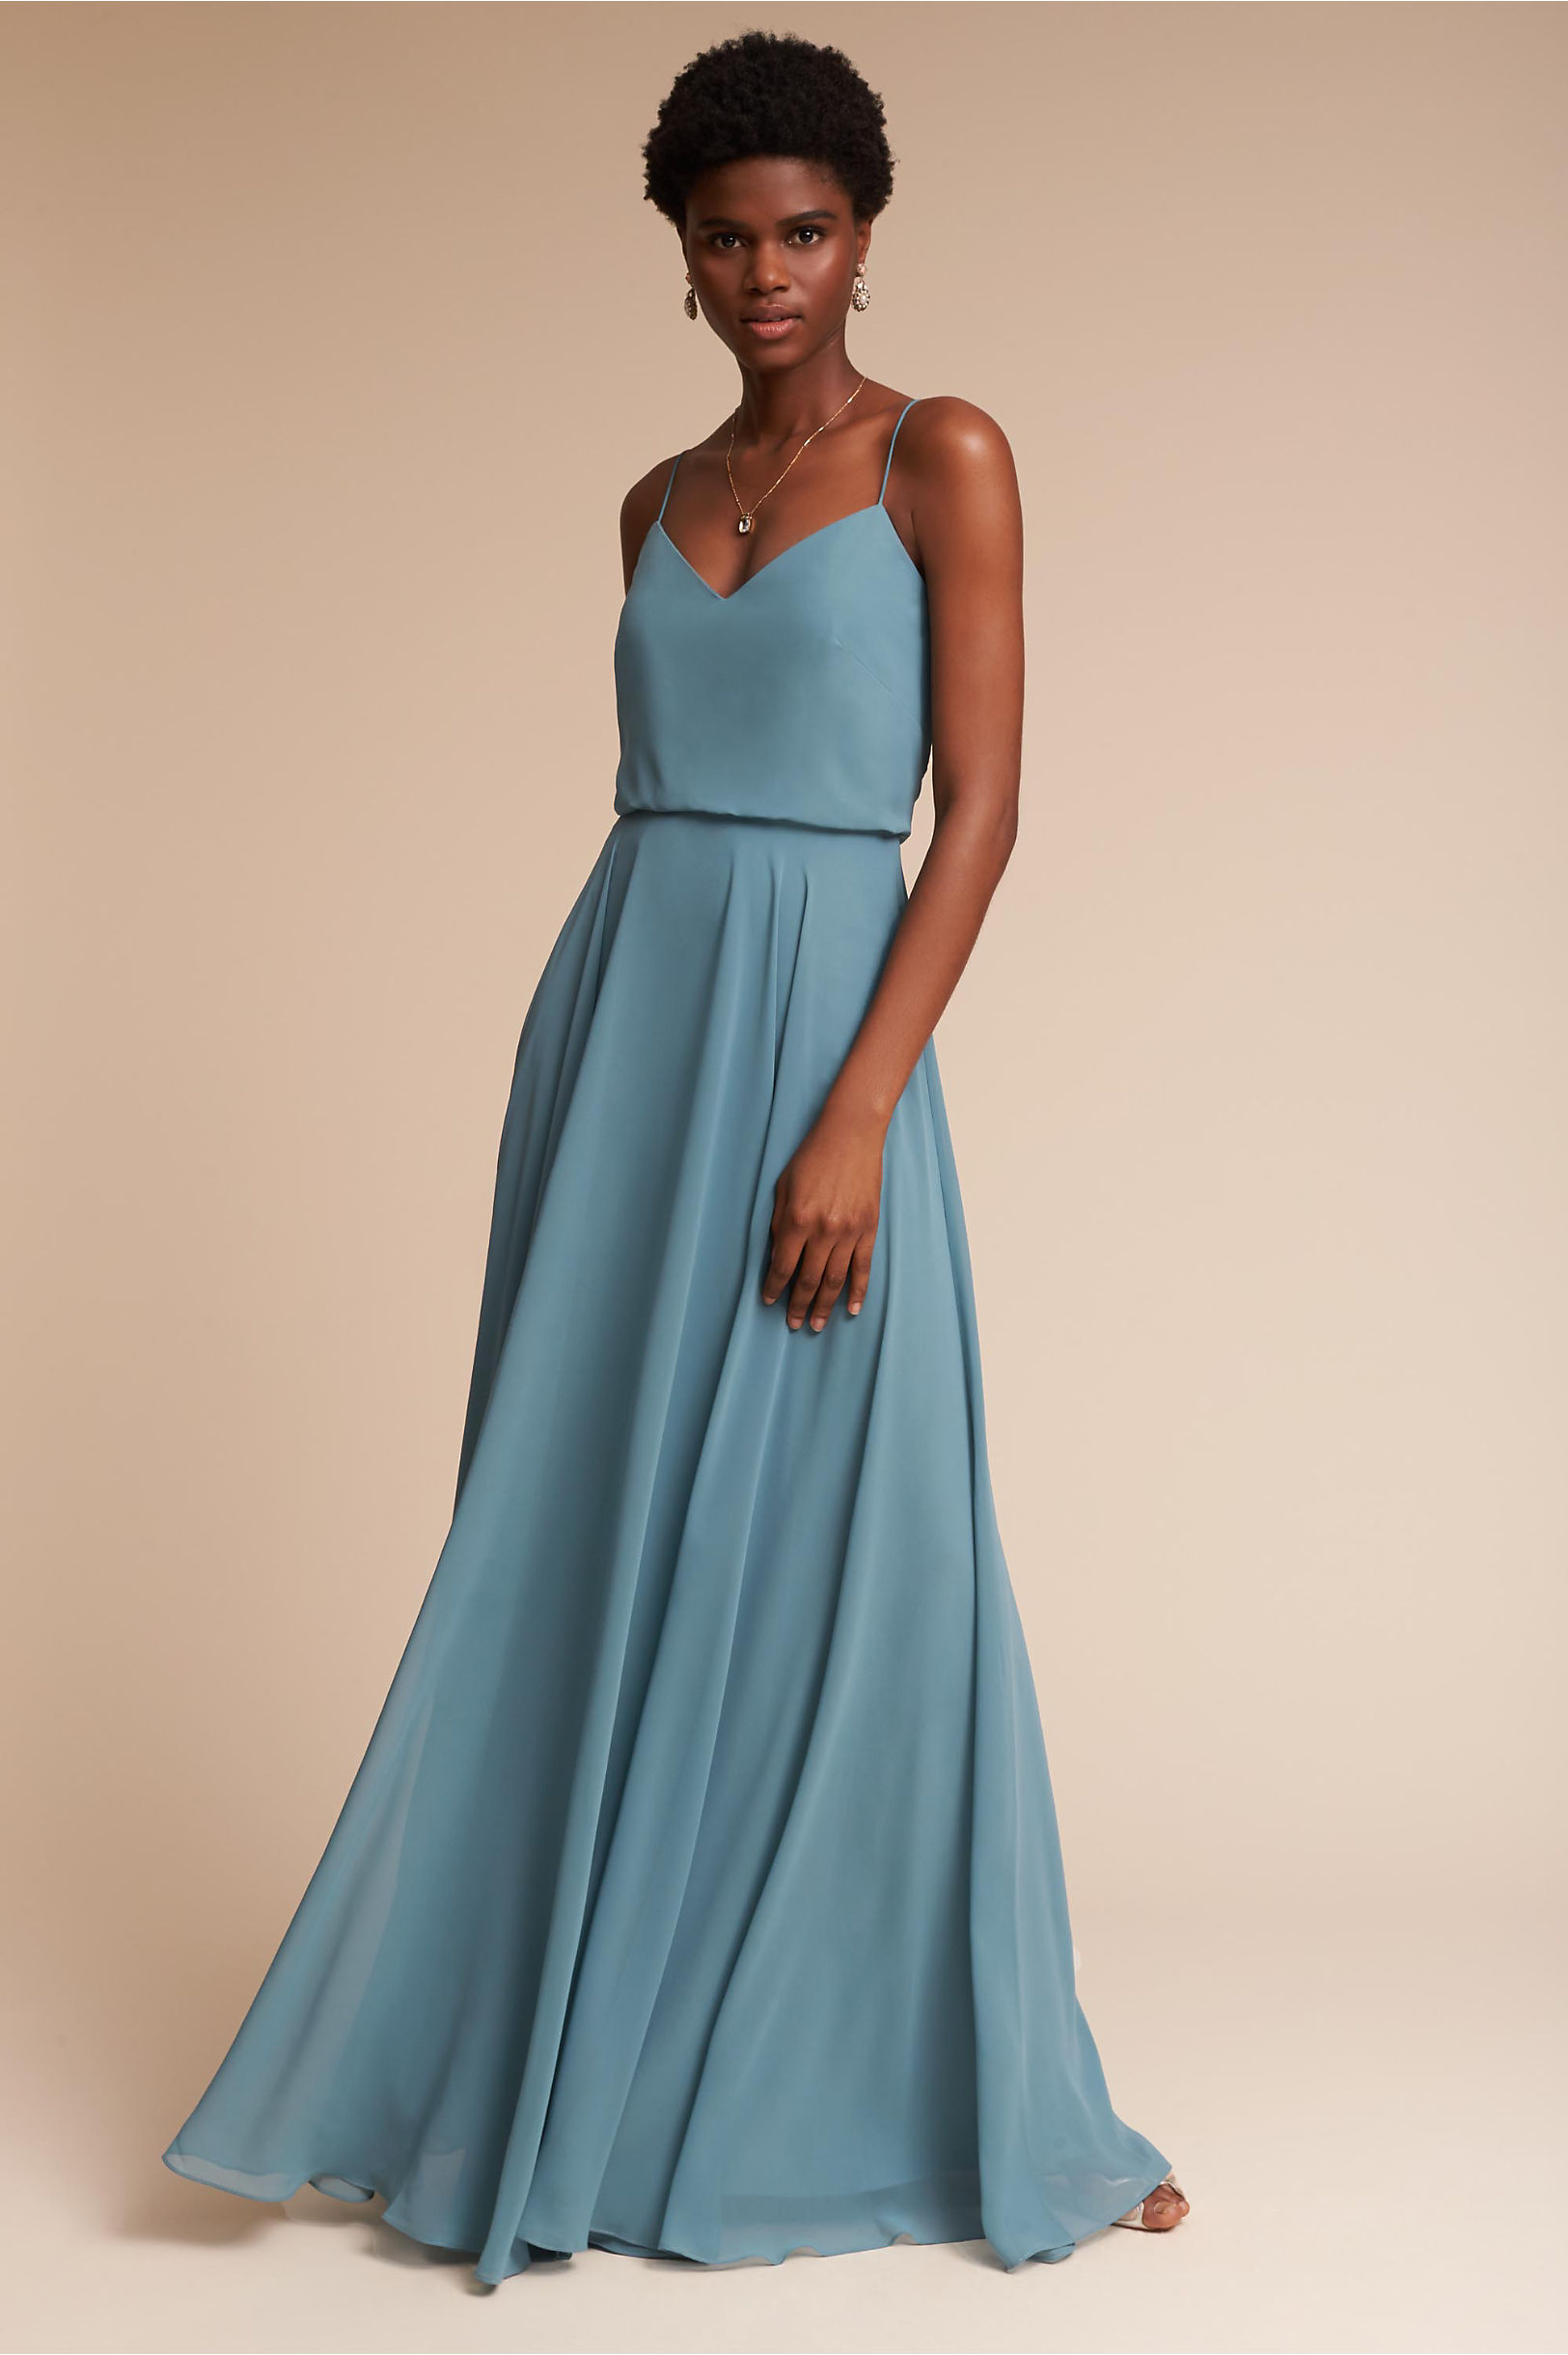 Inesse Dress in Sale | BHLDN